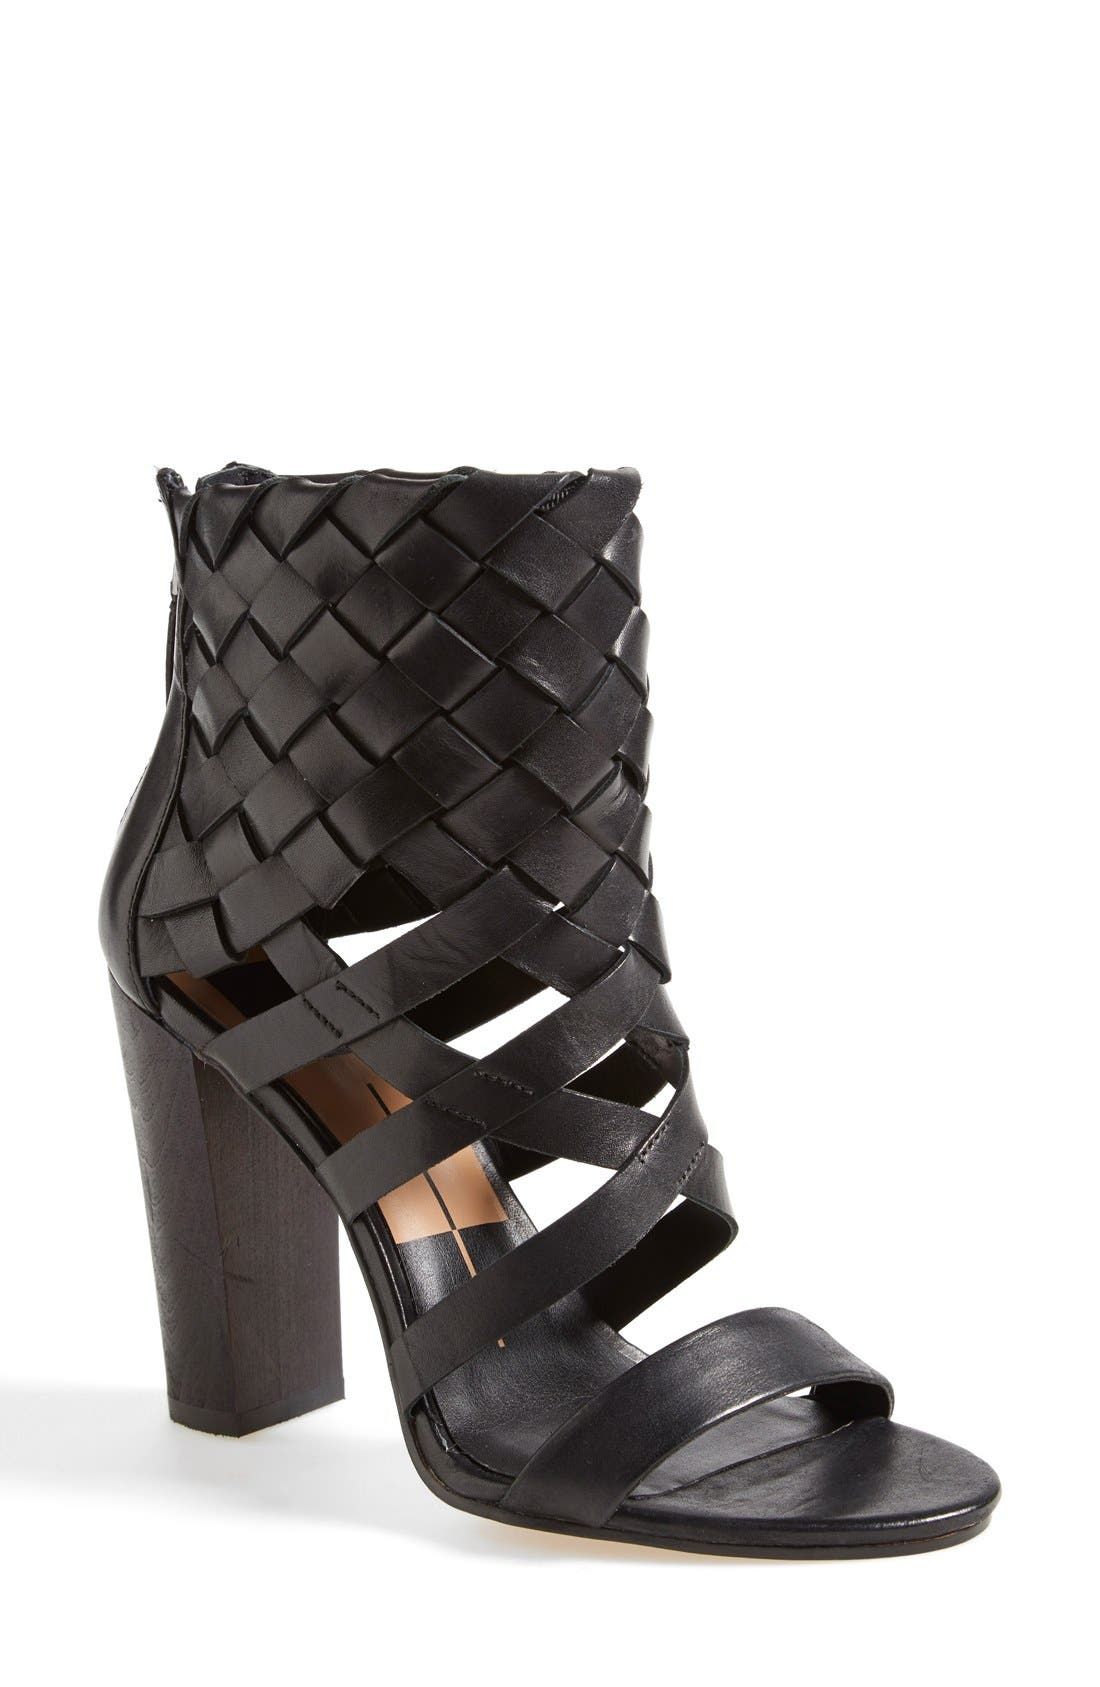 Alternate Image 1 Selected - Dolce Vita 'Nakita' Woven Leather Sandal